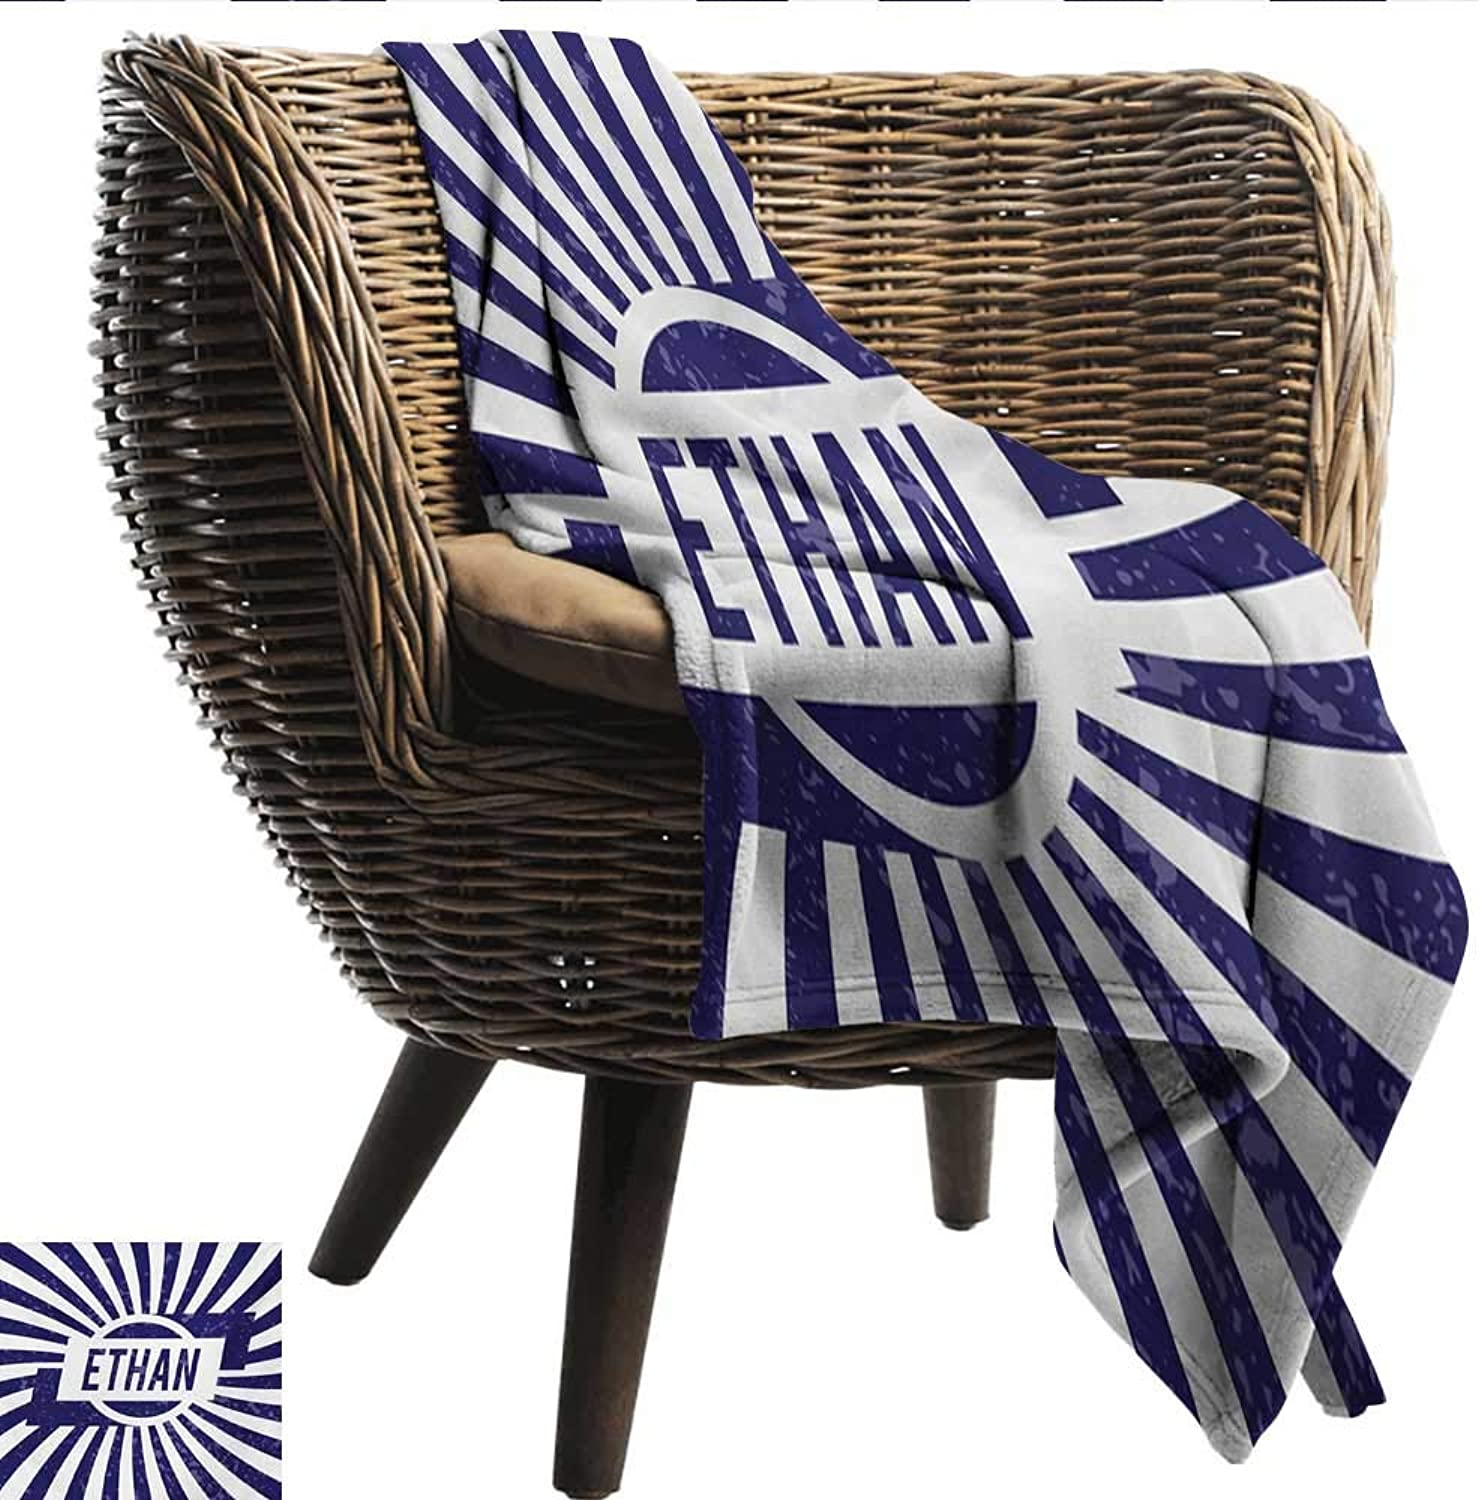 Davishouse Ethan Decorative Throw Blanket Grunge Letters in Navy bluee in a Circle with Wavy Stripes Boys Birthday All Season for Couch or Bed 50  Wx60 L